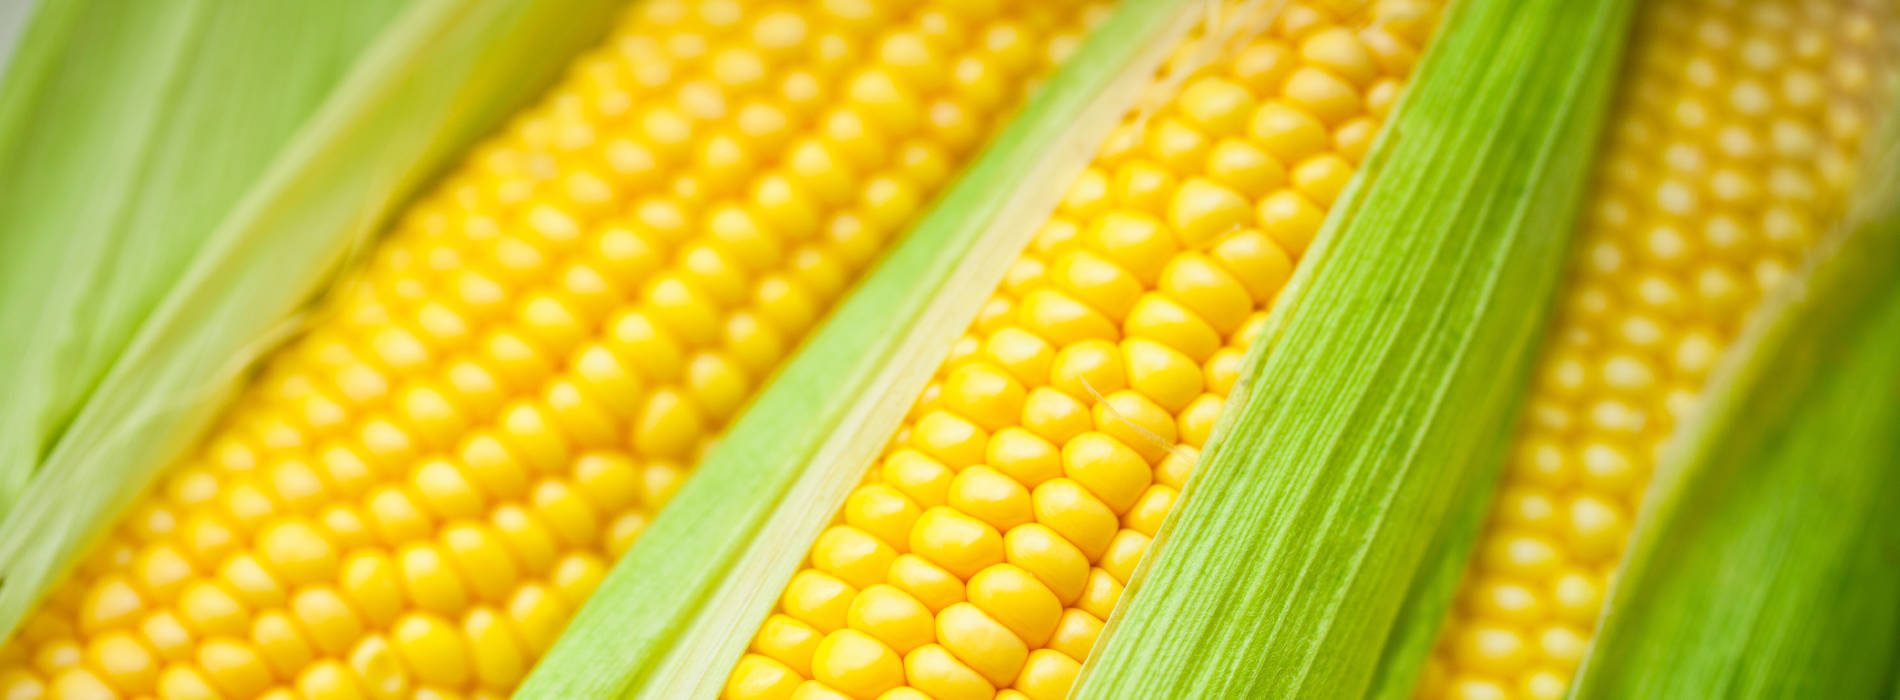 Zimbabwean Govt to Import 1,7 Million Tonnes of Maize